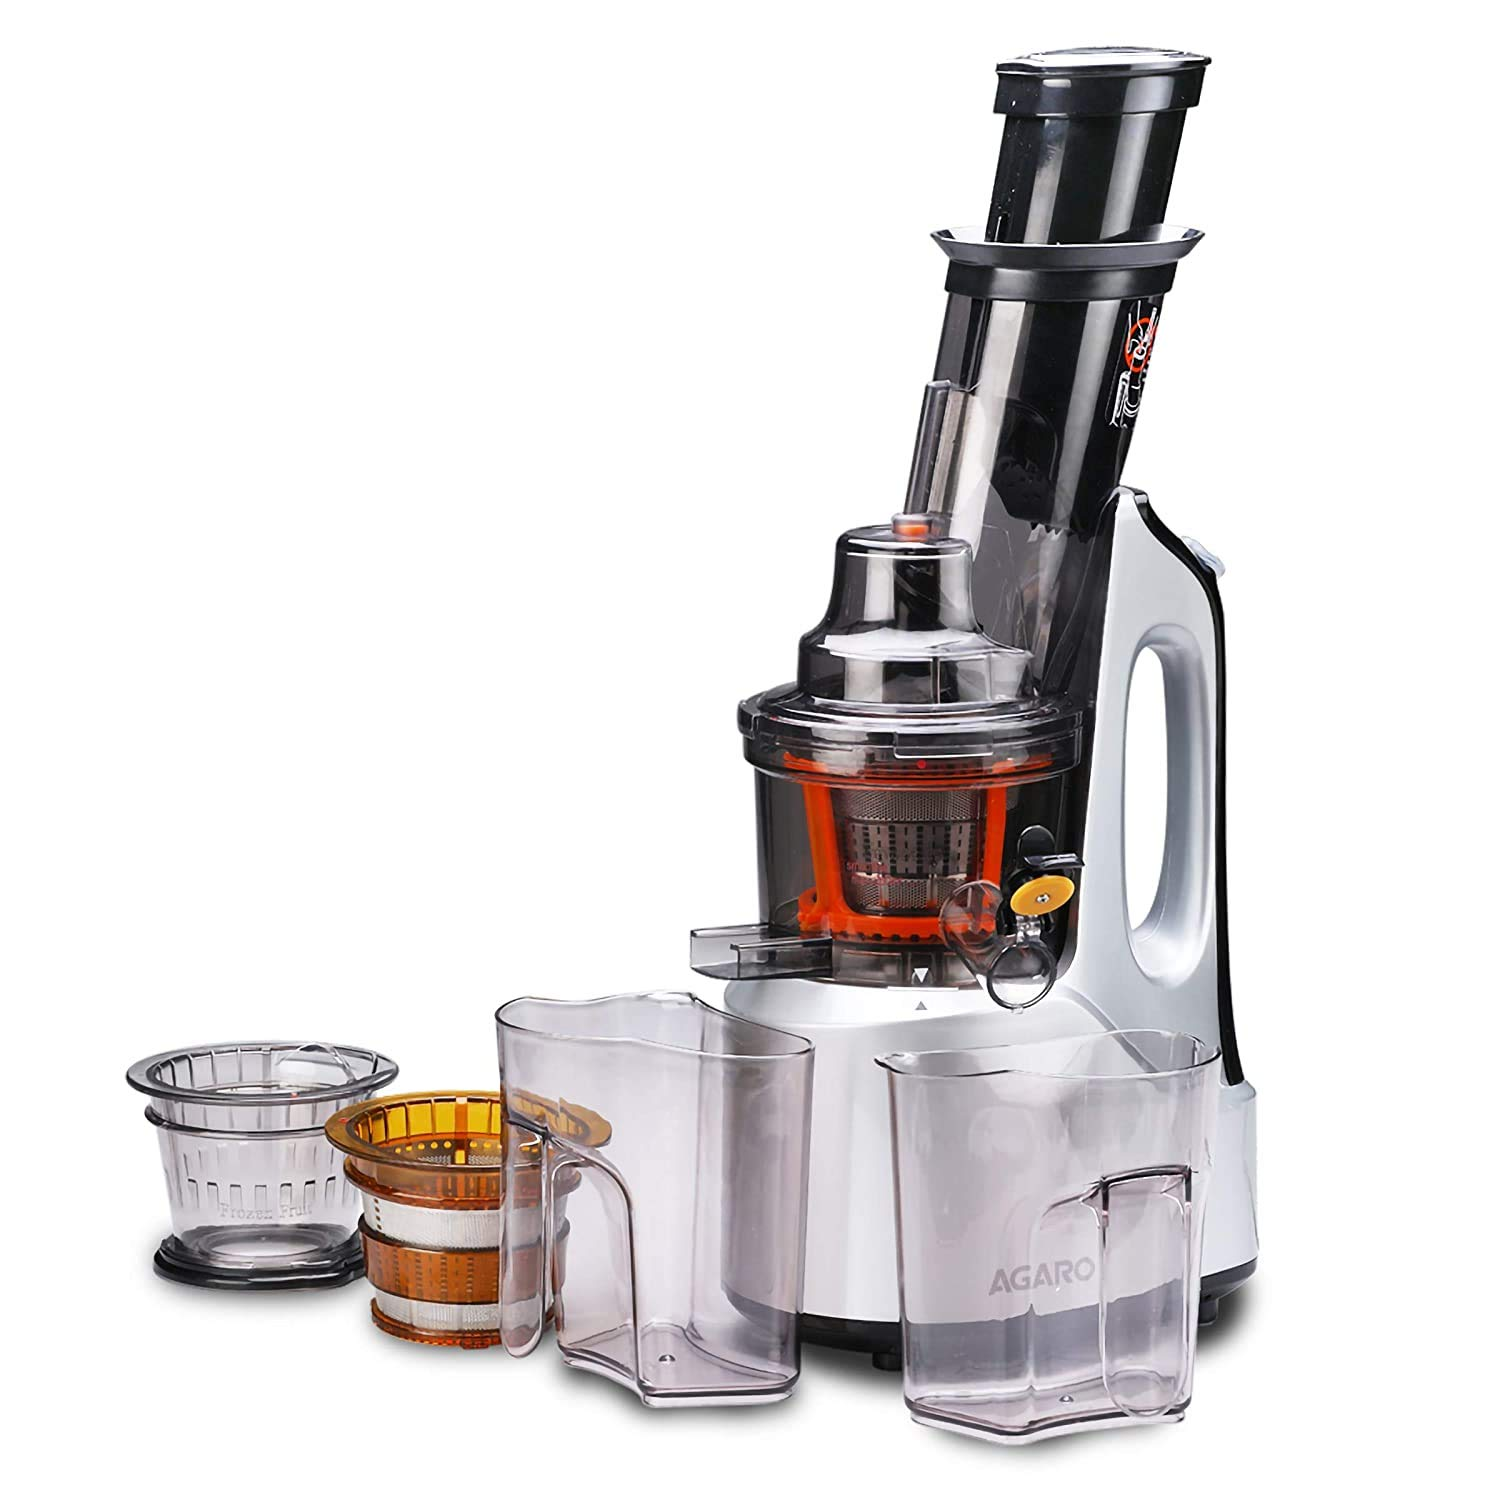 Agaro black and silver color cold pres best juicers in India